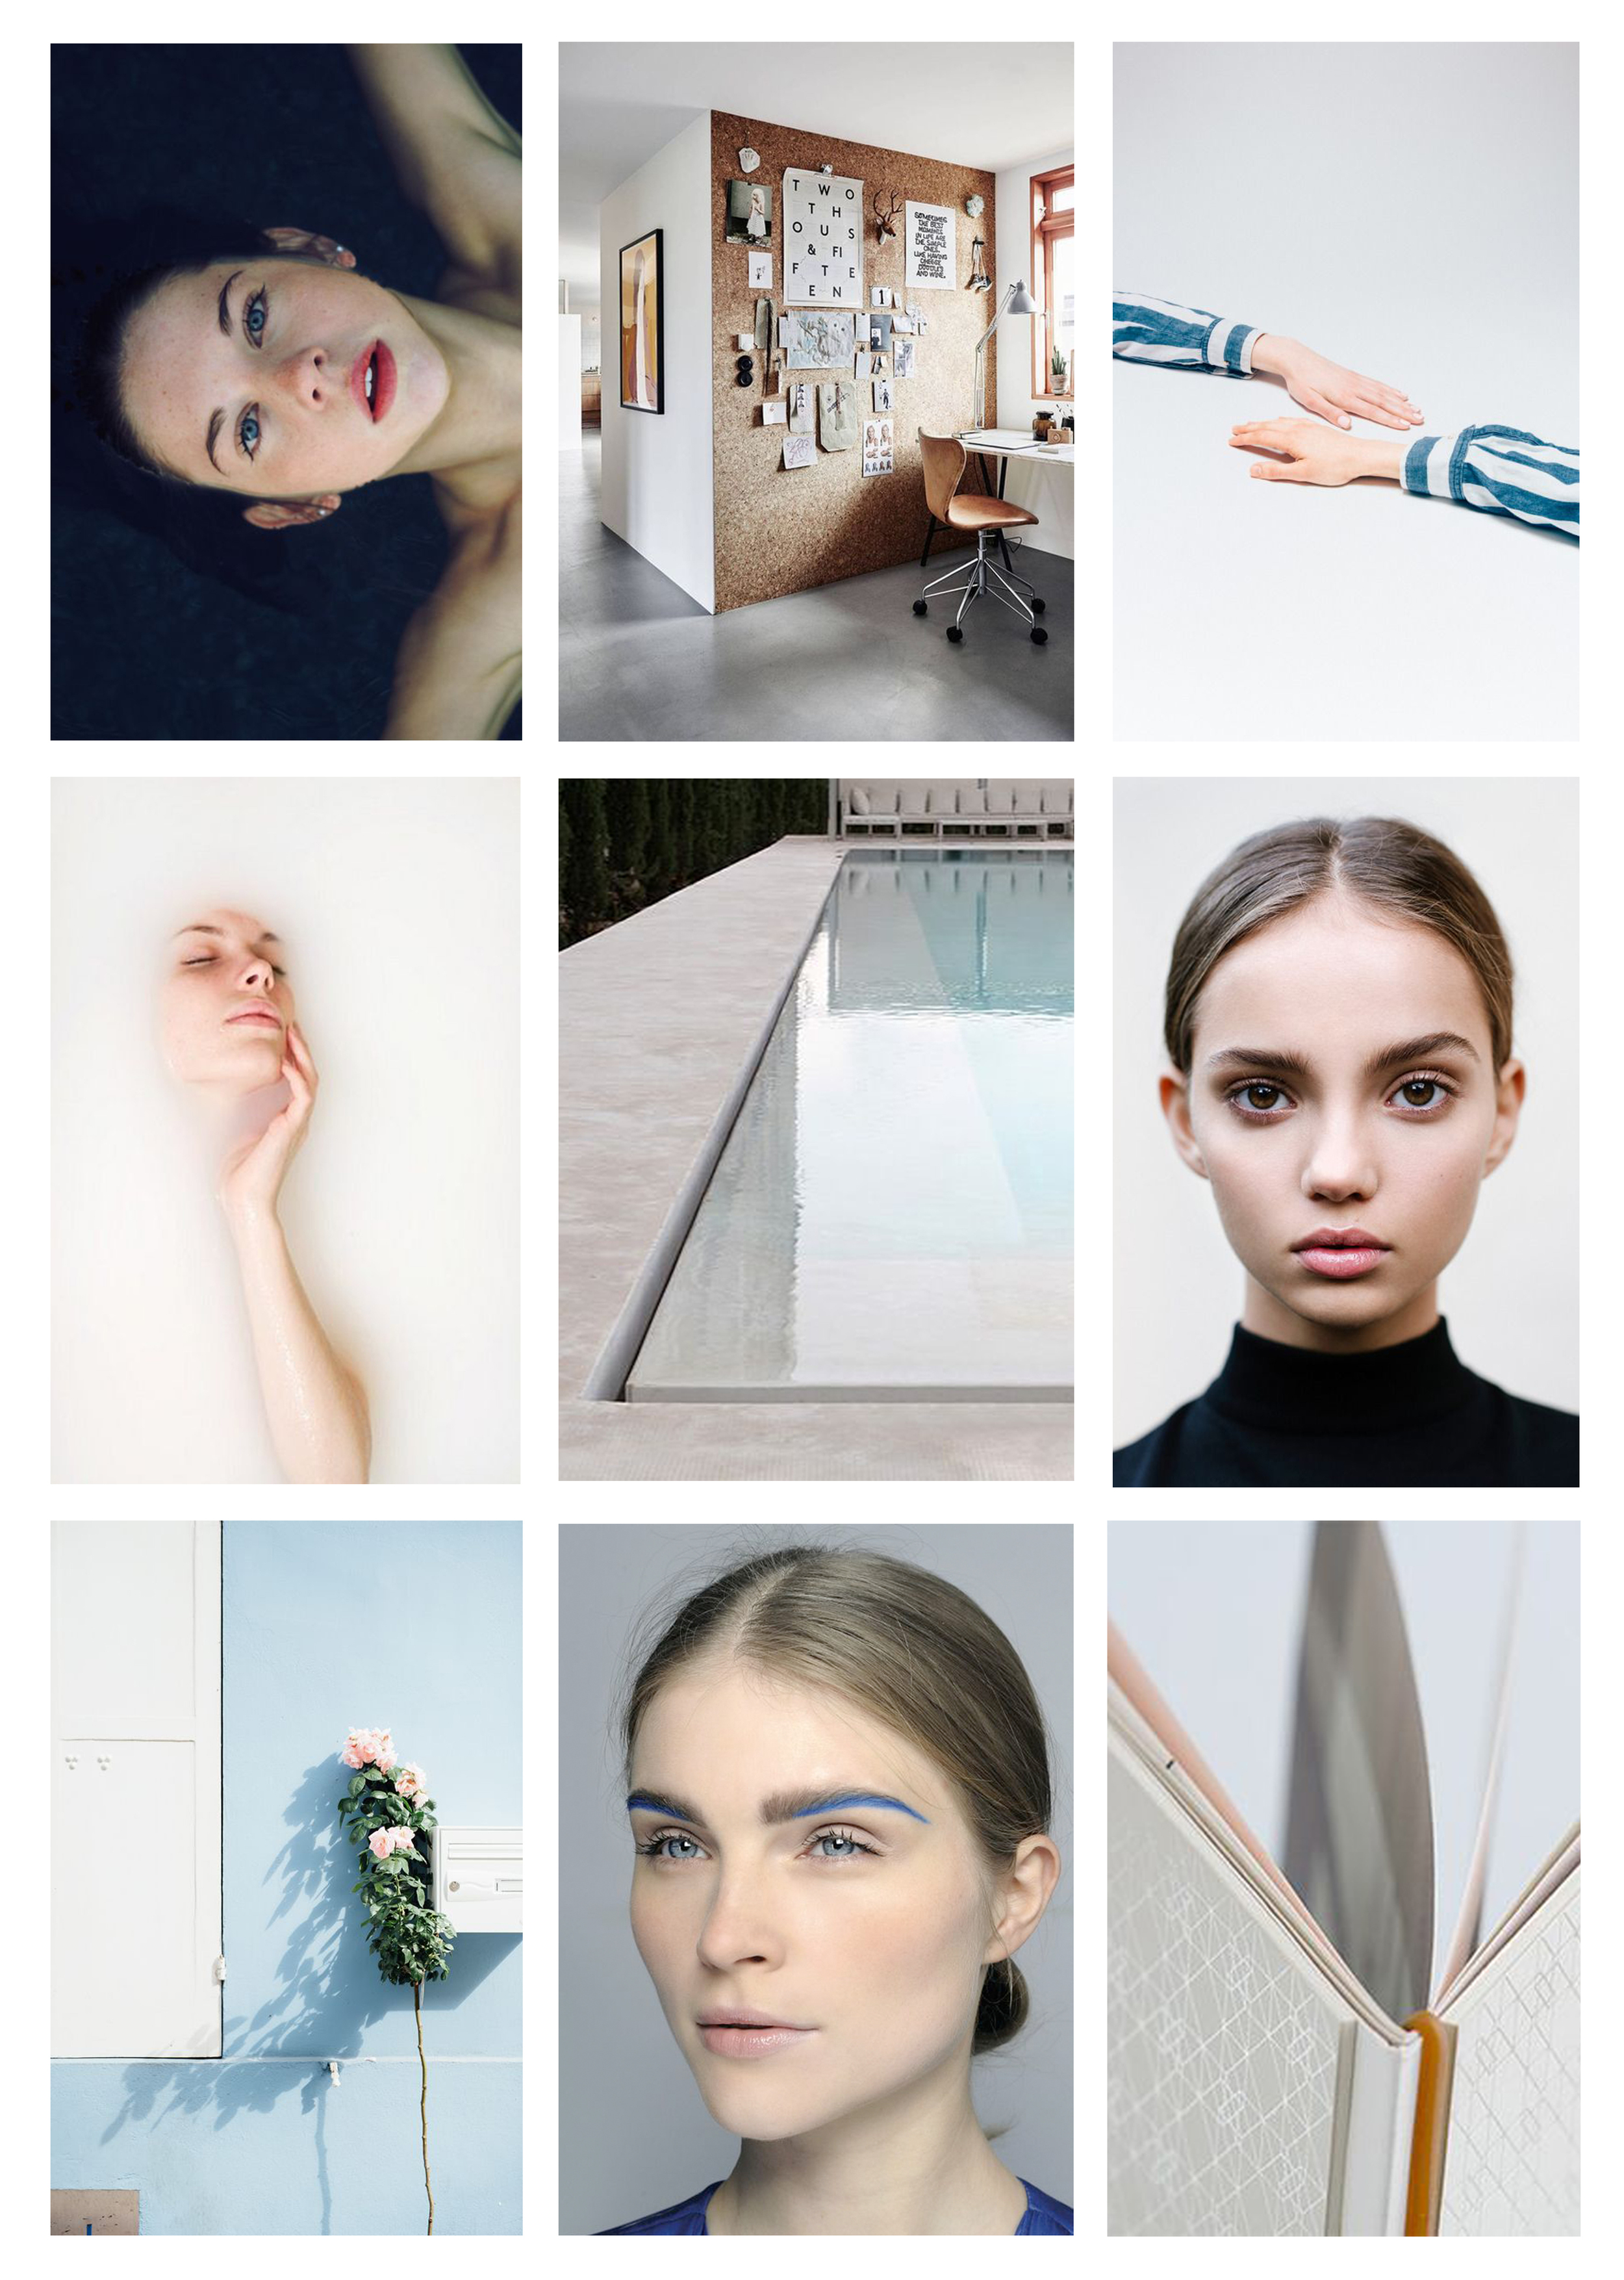 WEEKLY INSPIRATION WITH MONDAY MOOD BOARD 28 | THE PAPER CURATOR